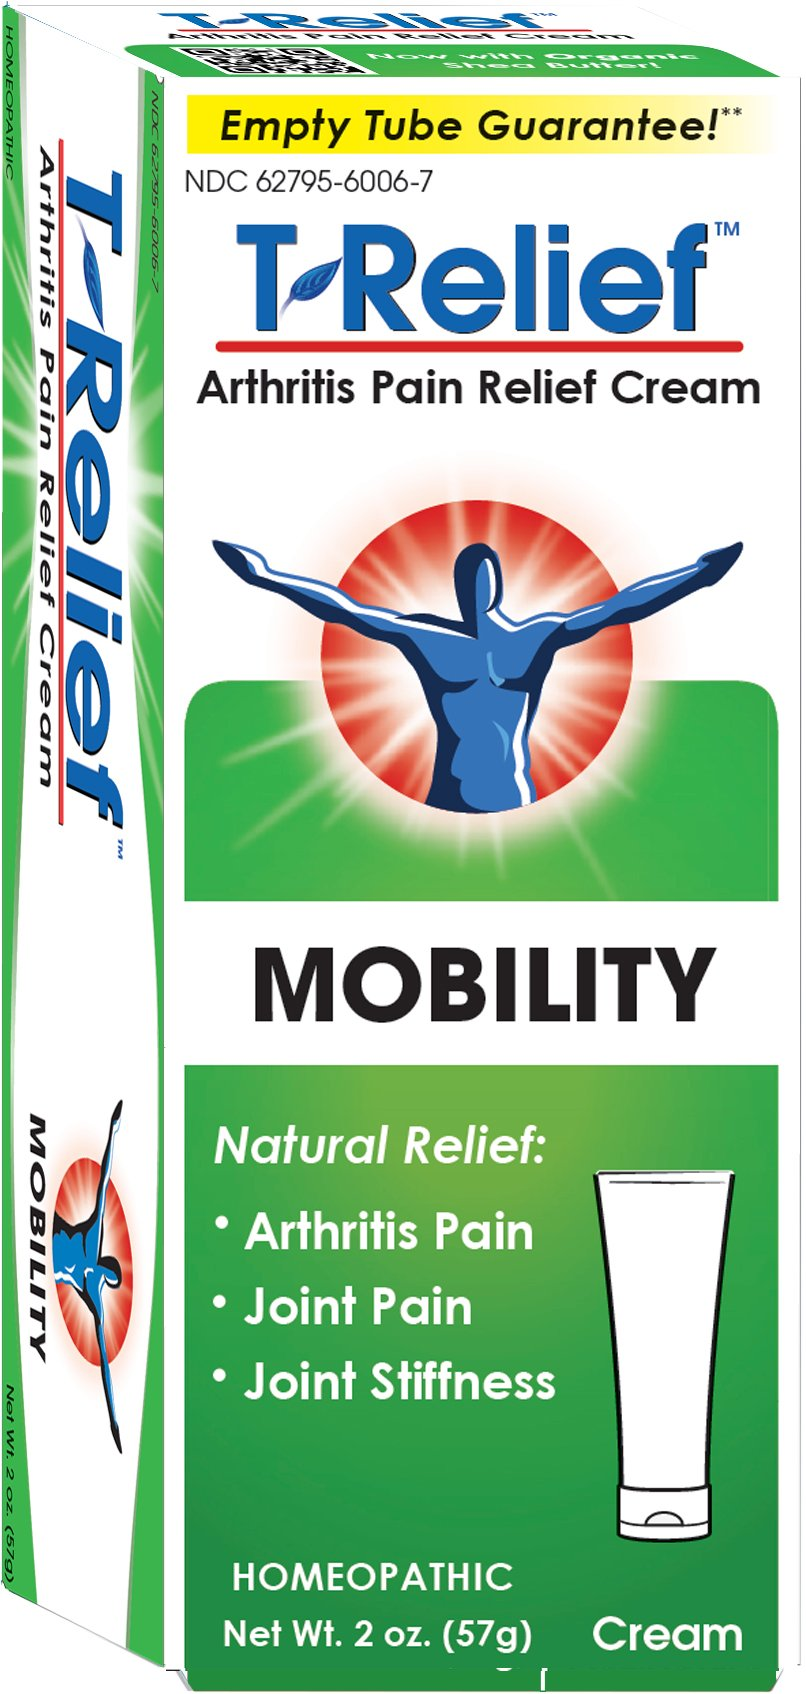 T-Relief Arthritis Ointment - Pain Relief Cream for Minor Arthritis Pain and Joint Stiffness - Homeopathic Formula with Arnica - 2 ounce